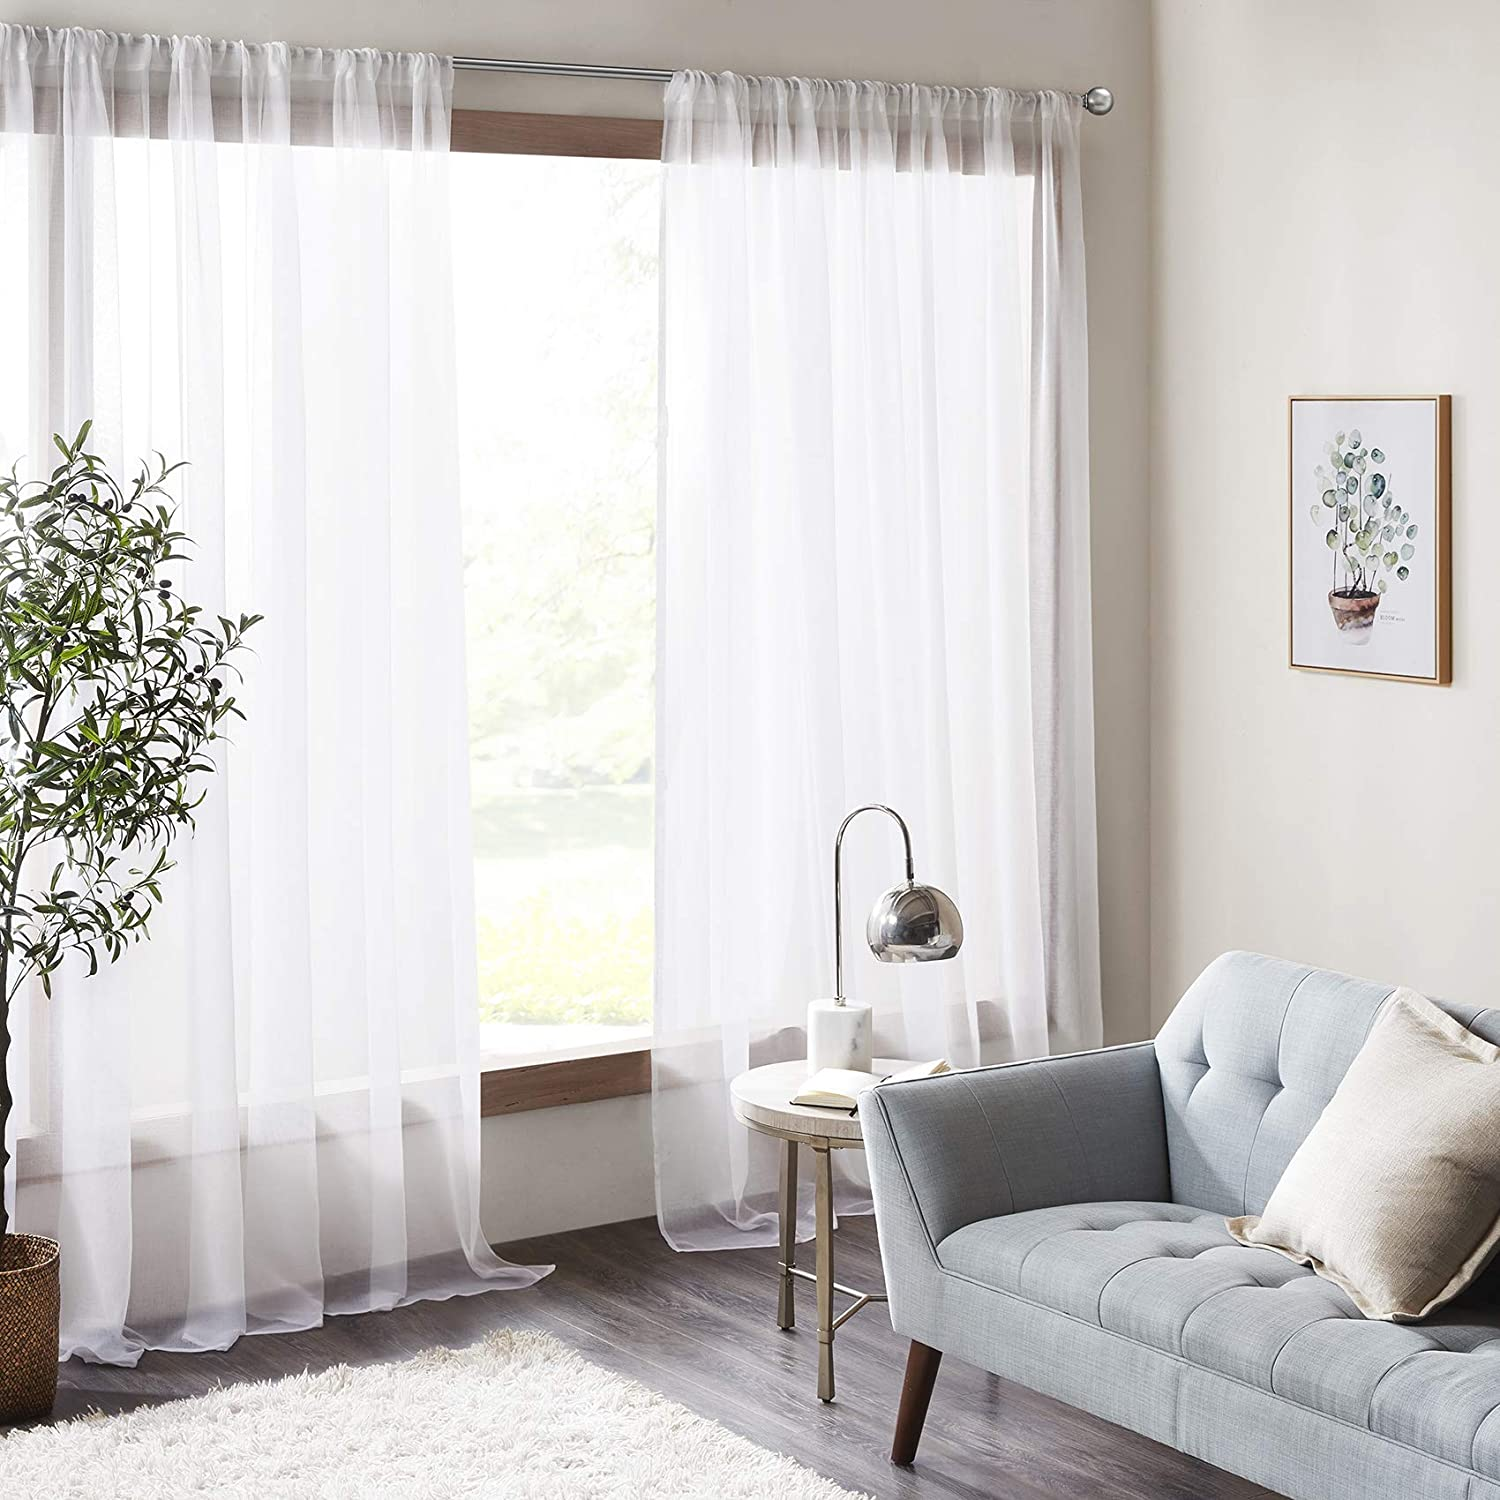 """Amari Cream White Bedroom Curtain - 2 Panels Classical Solid Voile Curtains, Ultra Sheer Curtains High Thread with Rod Pocket (Cream, 140 W x 175 L) 56"""" wide x 69"""" drop (140cm x 175cm) Cream White"""